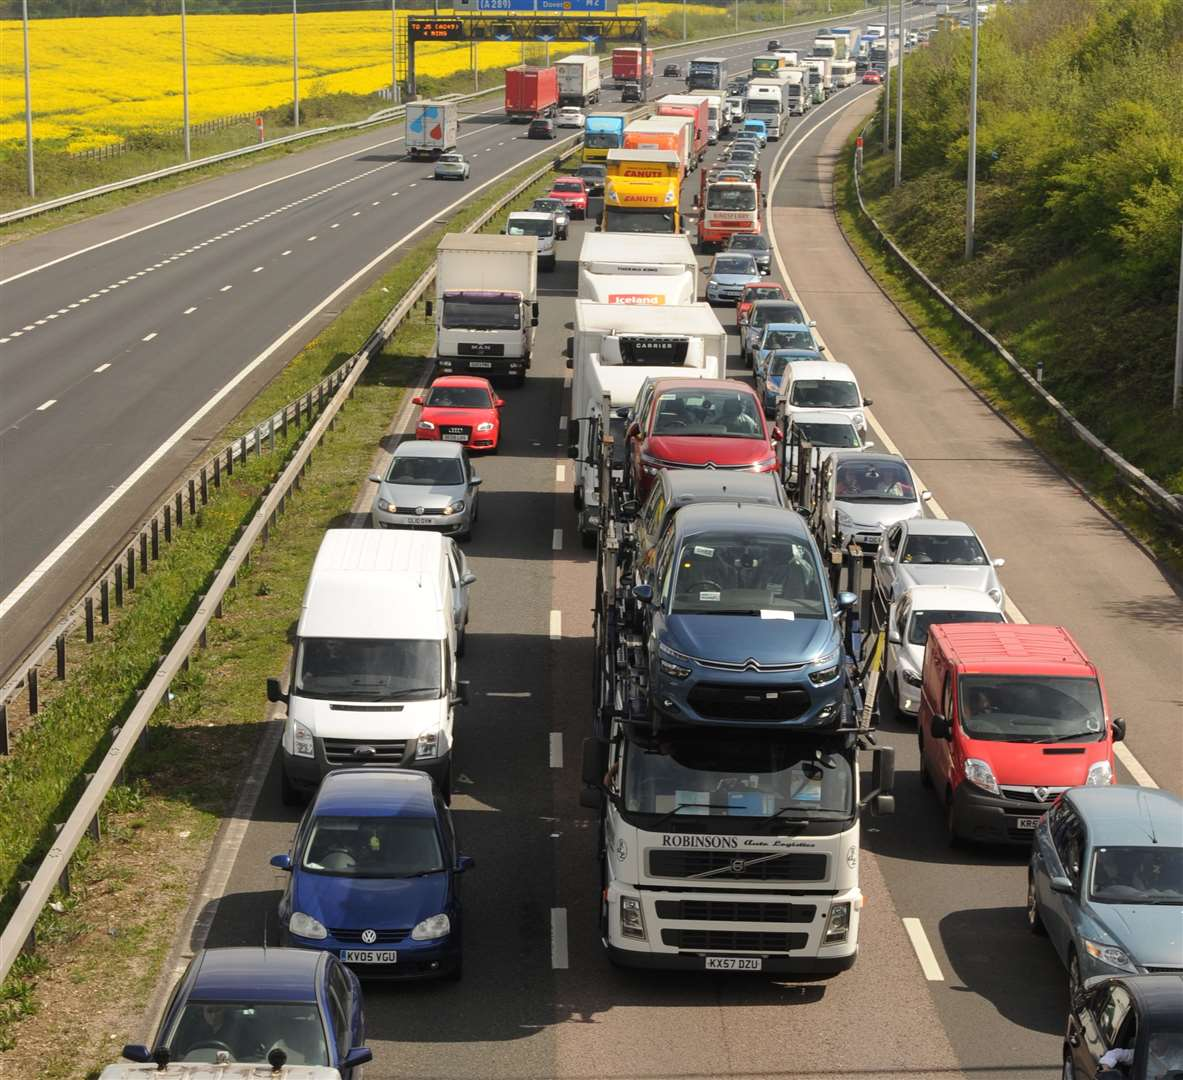 The roadworks caused severe delays at the weekend